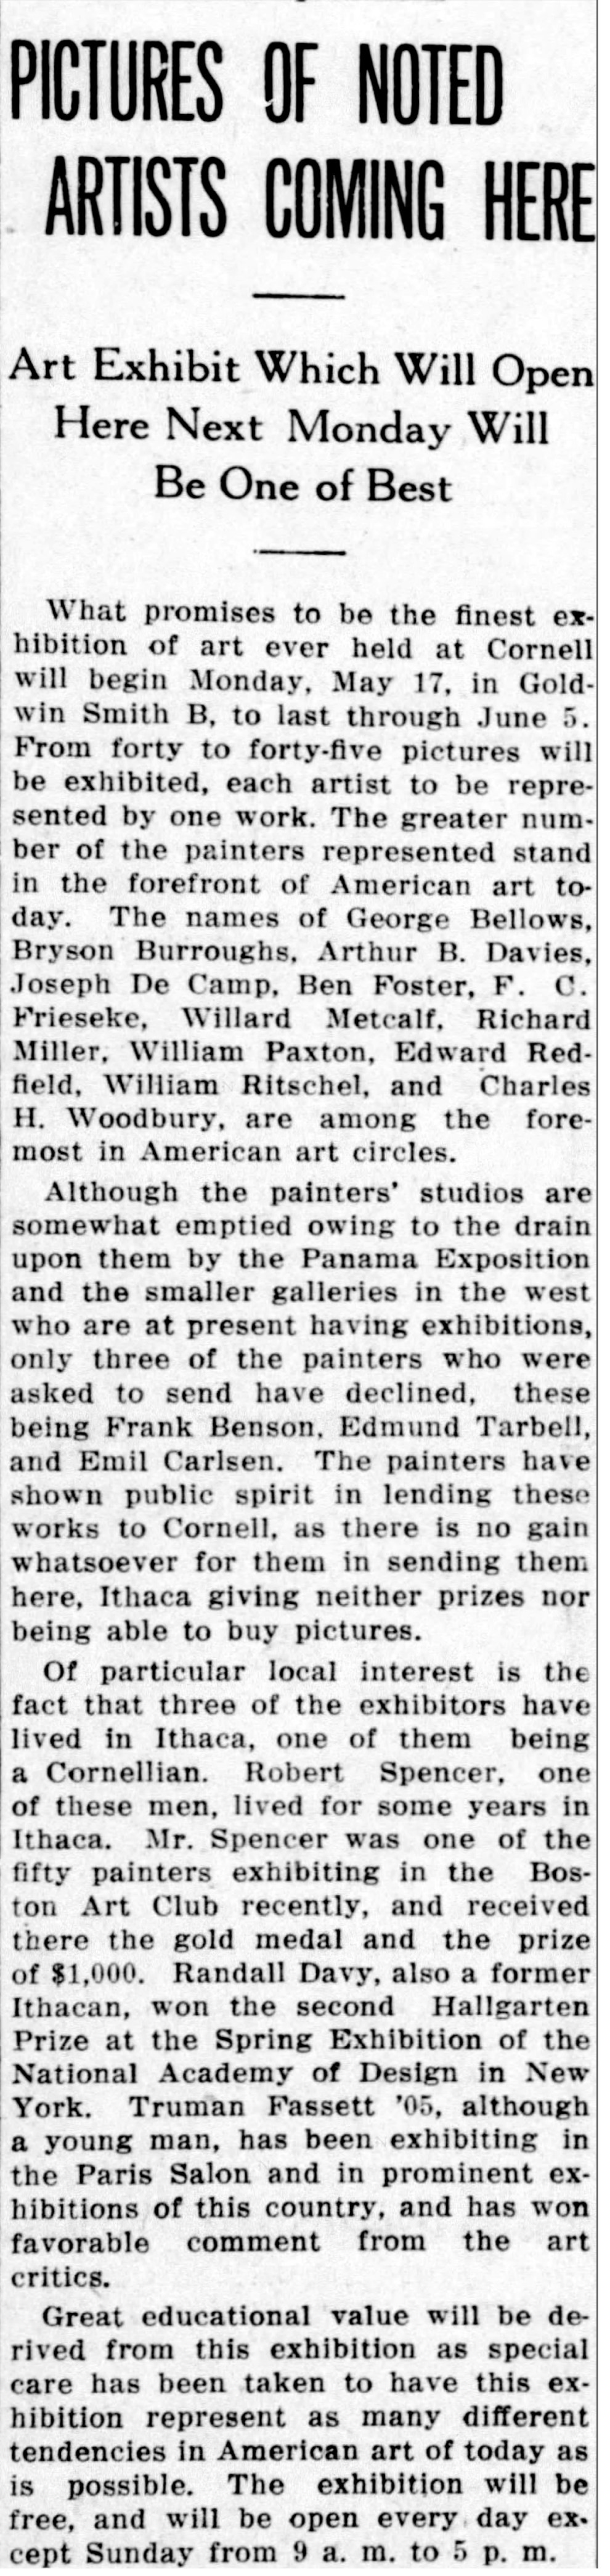 """The Ithaca Journal, Ithaca, NY, """"Pictures of noted artists coming here"""", Friday, May 14, 1915, page 5, not illustrated"""